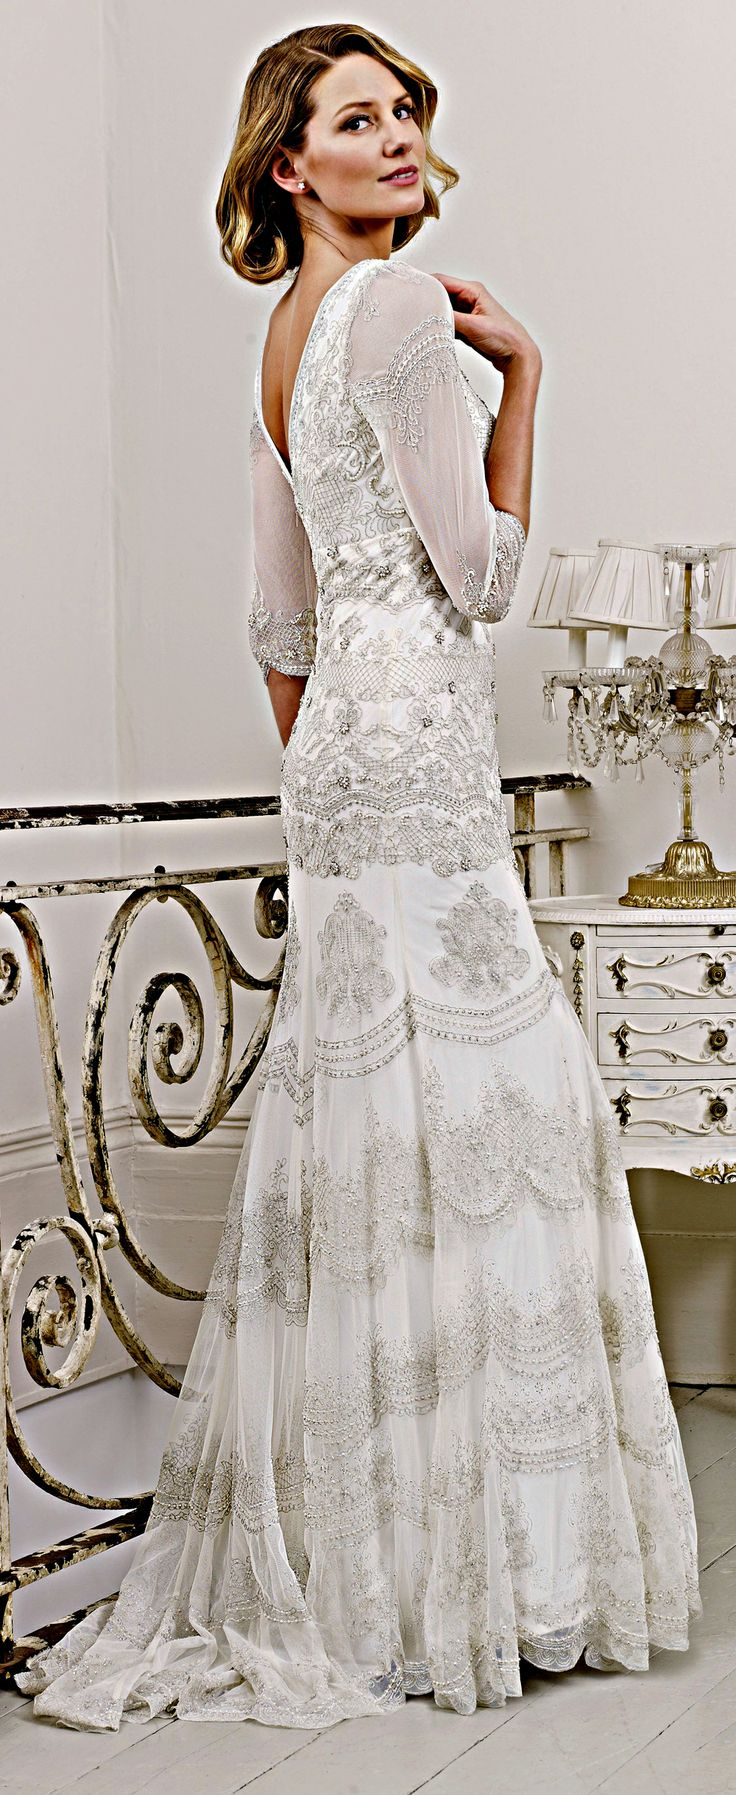 12 best wedding dresses images on pinterest older bride second best wedding dresses for older brides with sleeves 0010 style open now all the latest fashion beauty and makeup tricks and clothes trends ombrellifo Image collections